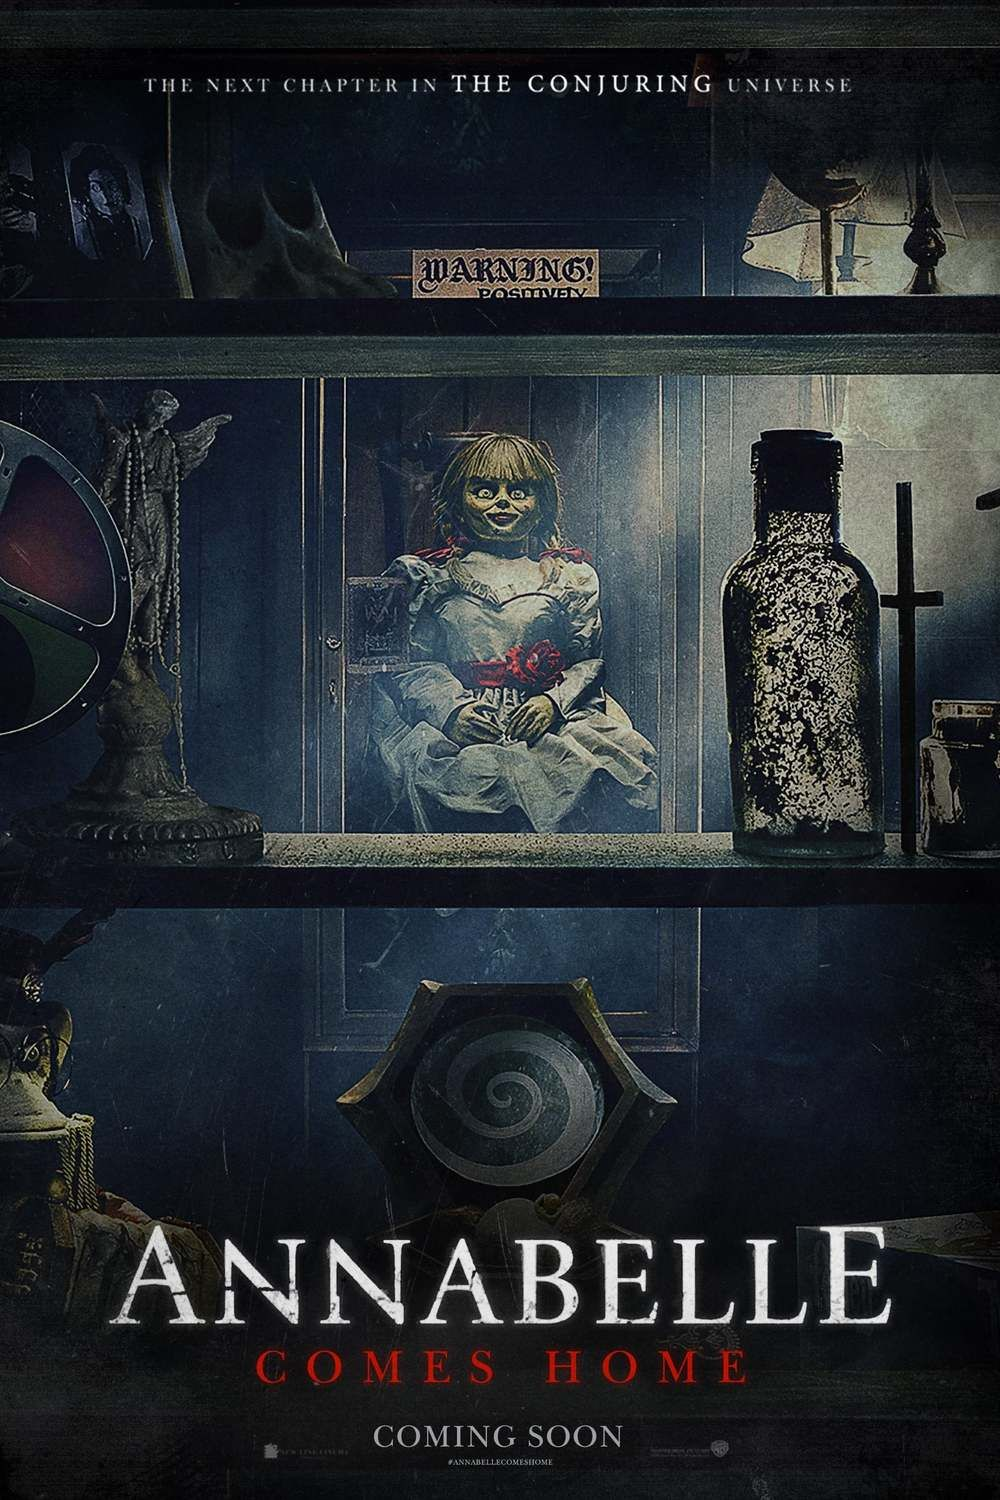 Annabelle Comes Home Lorraine warren, The conjuring